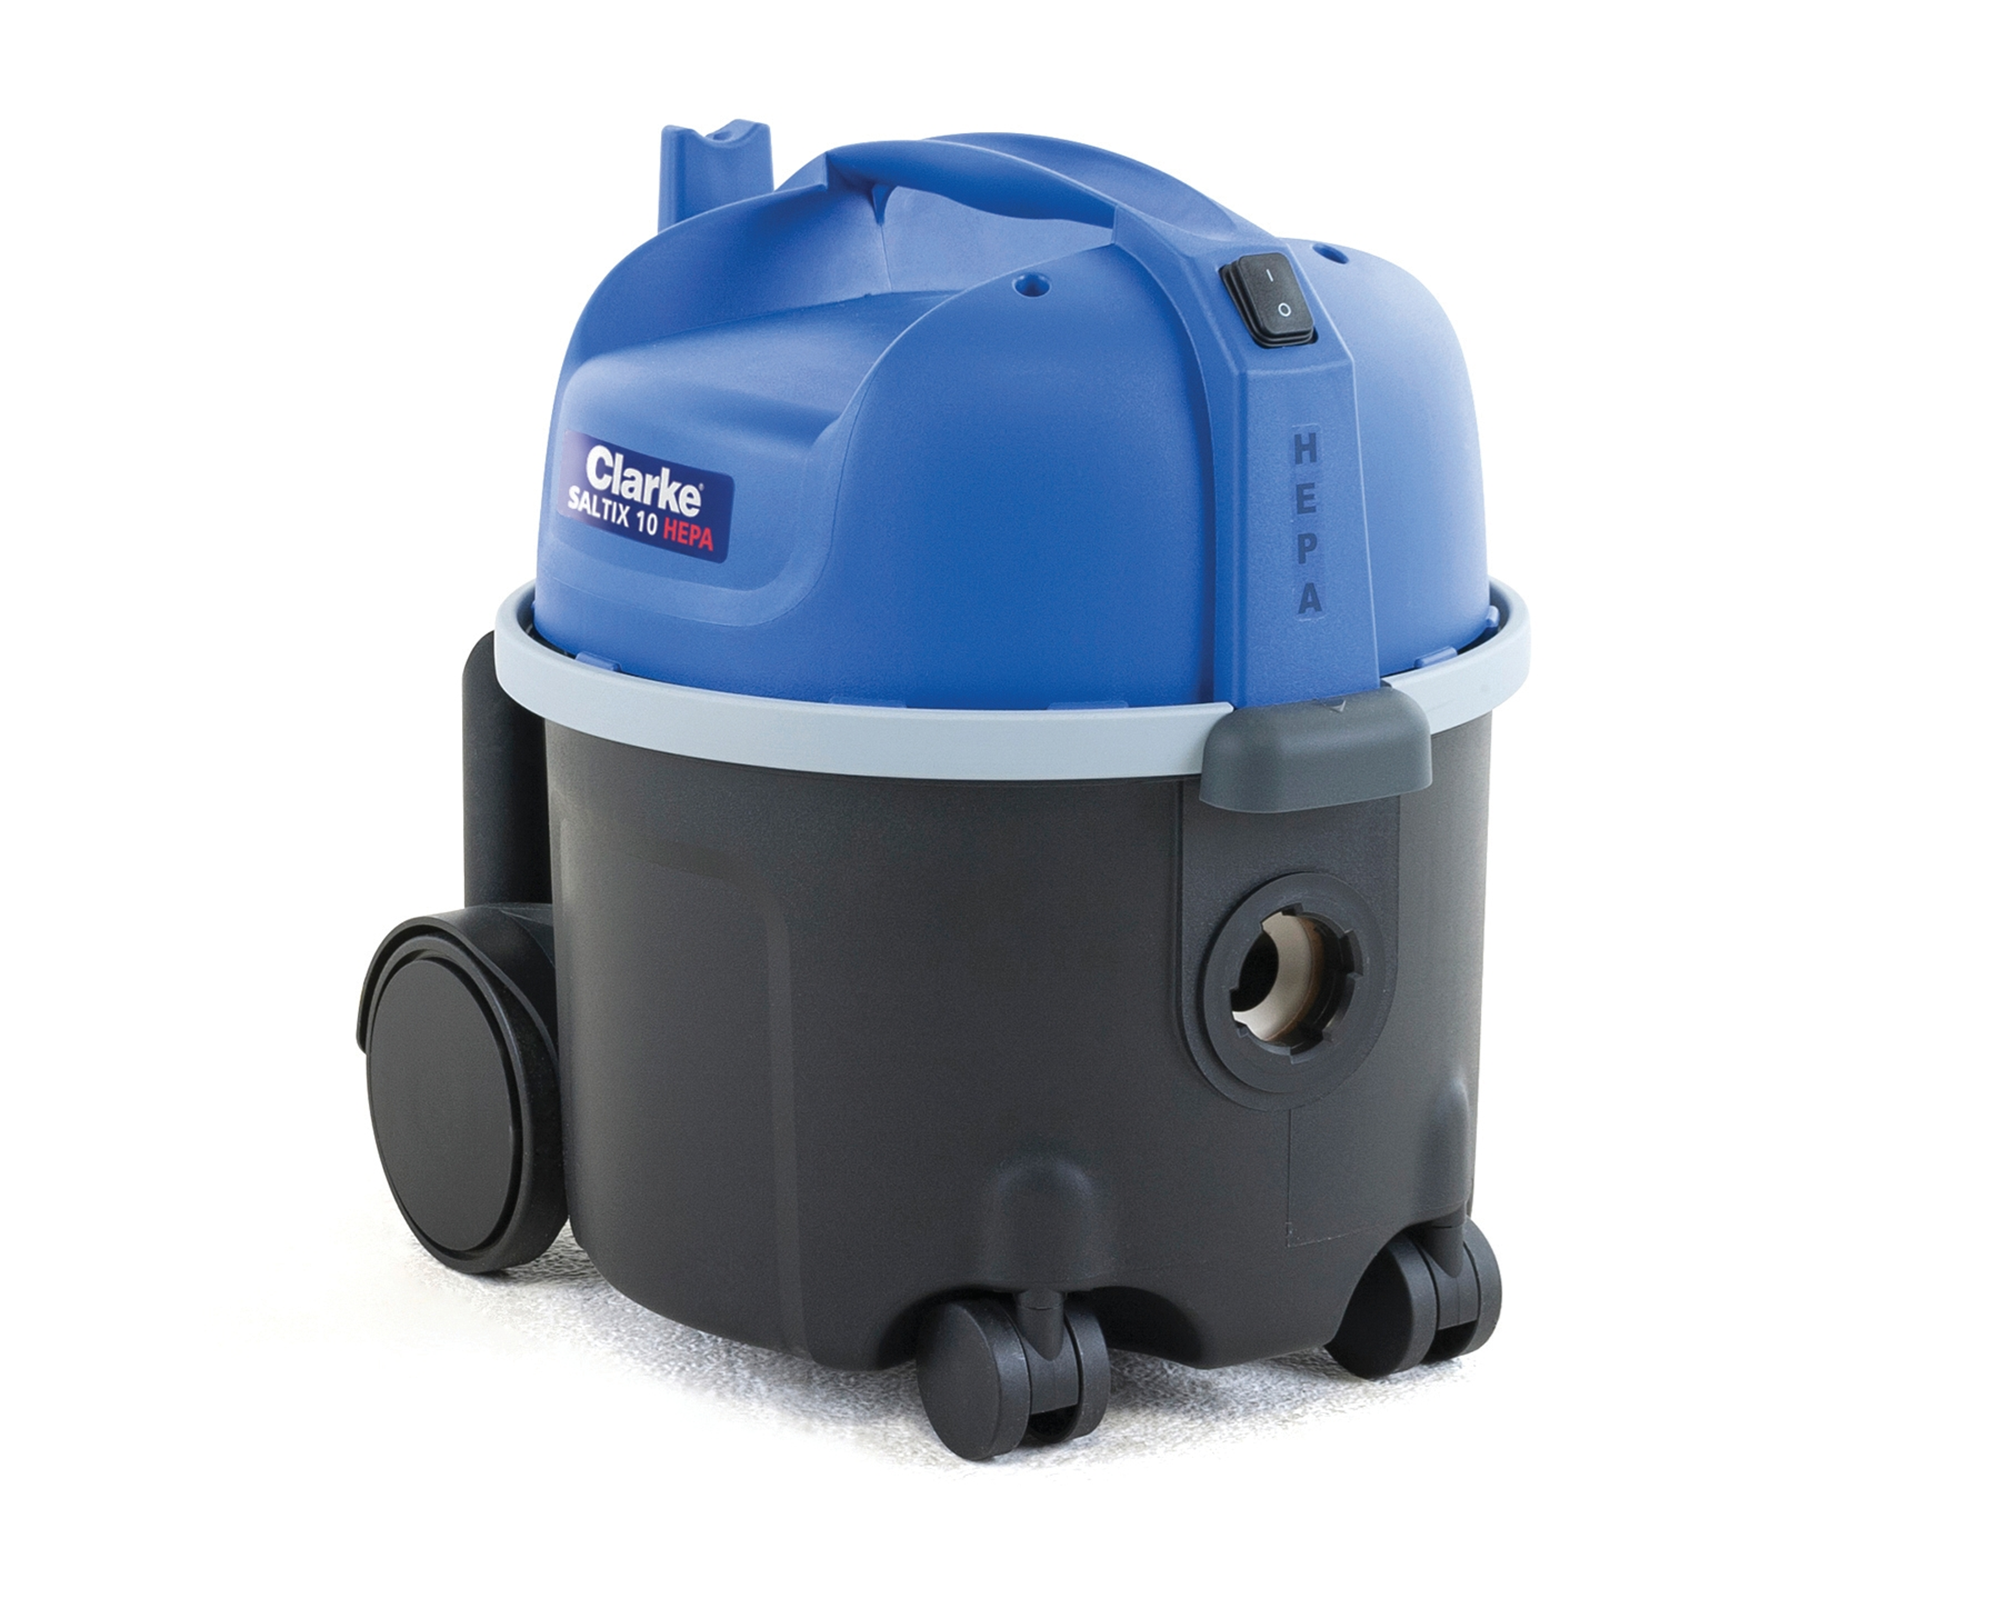 Product, Vacuum cleaners, Commercial vacuum cleaners, Dry vacuum cleaners, Nilfisk, CLARKE SALTIX 10 HEPA